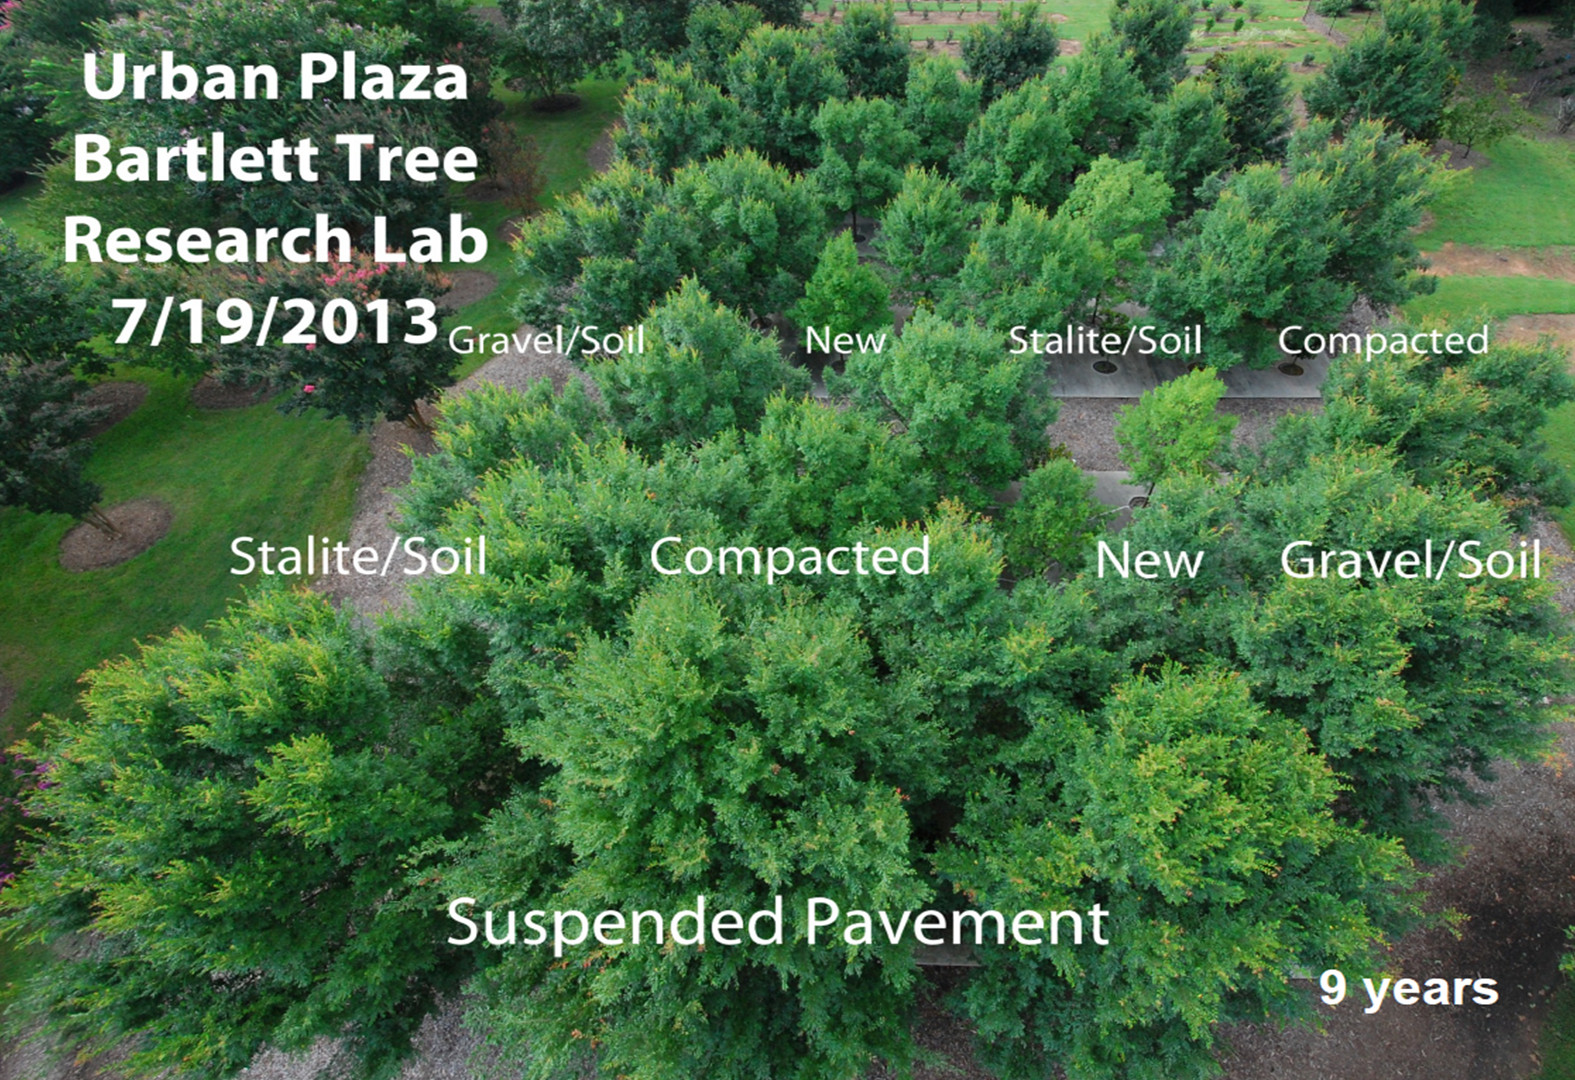 The Bartlett growing media in 2013, after nine growing seasons. Note the size of the trees growing in suspended pavement relative to other treatment types. Credit: E. Tom Smiley